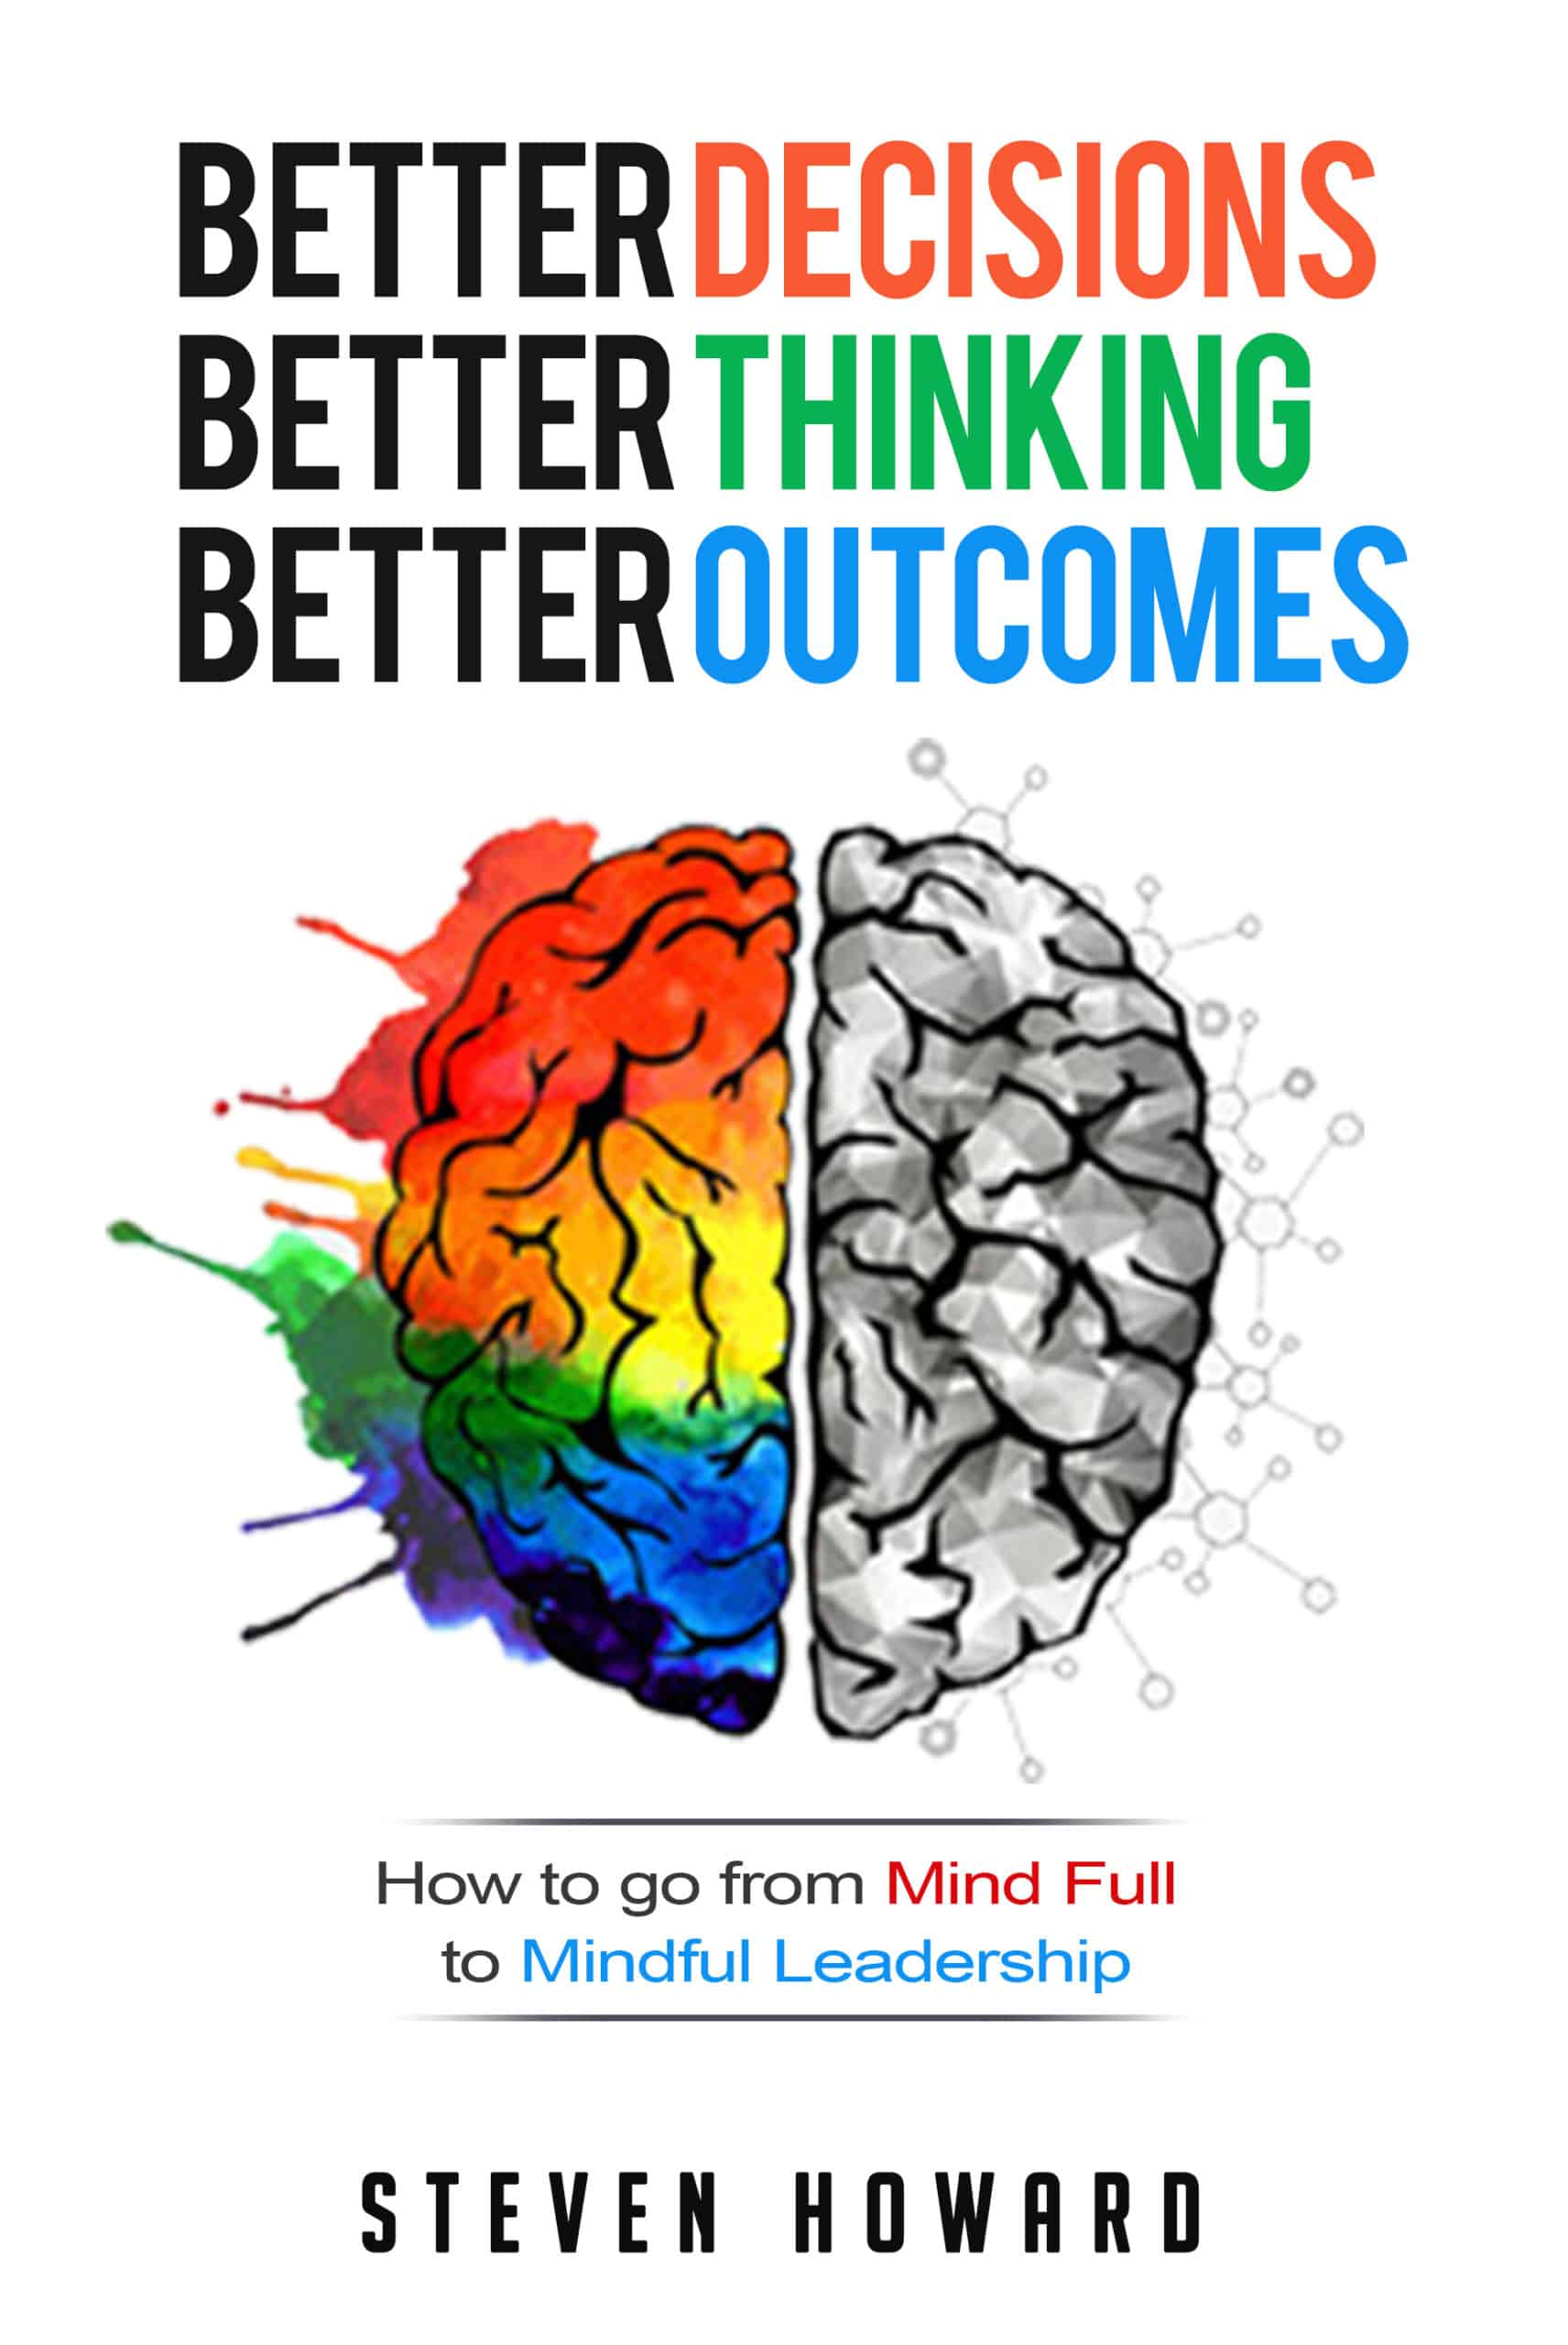 Better Decisions Better Thinking Better Outcomes by Steven Howard